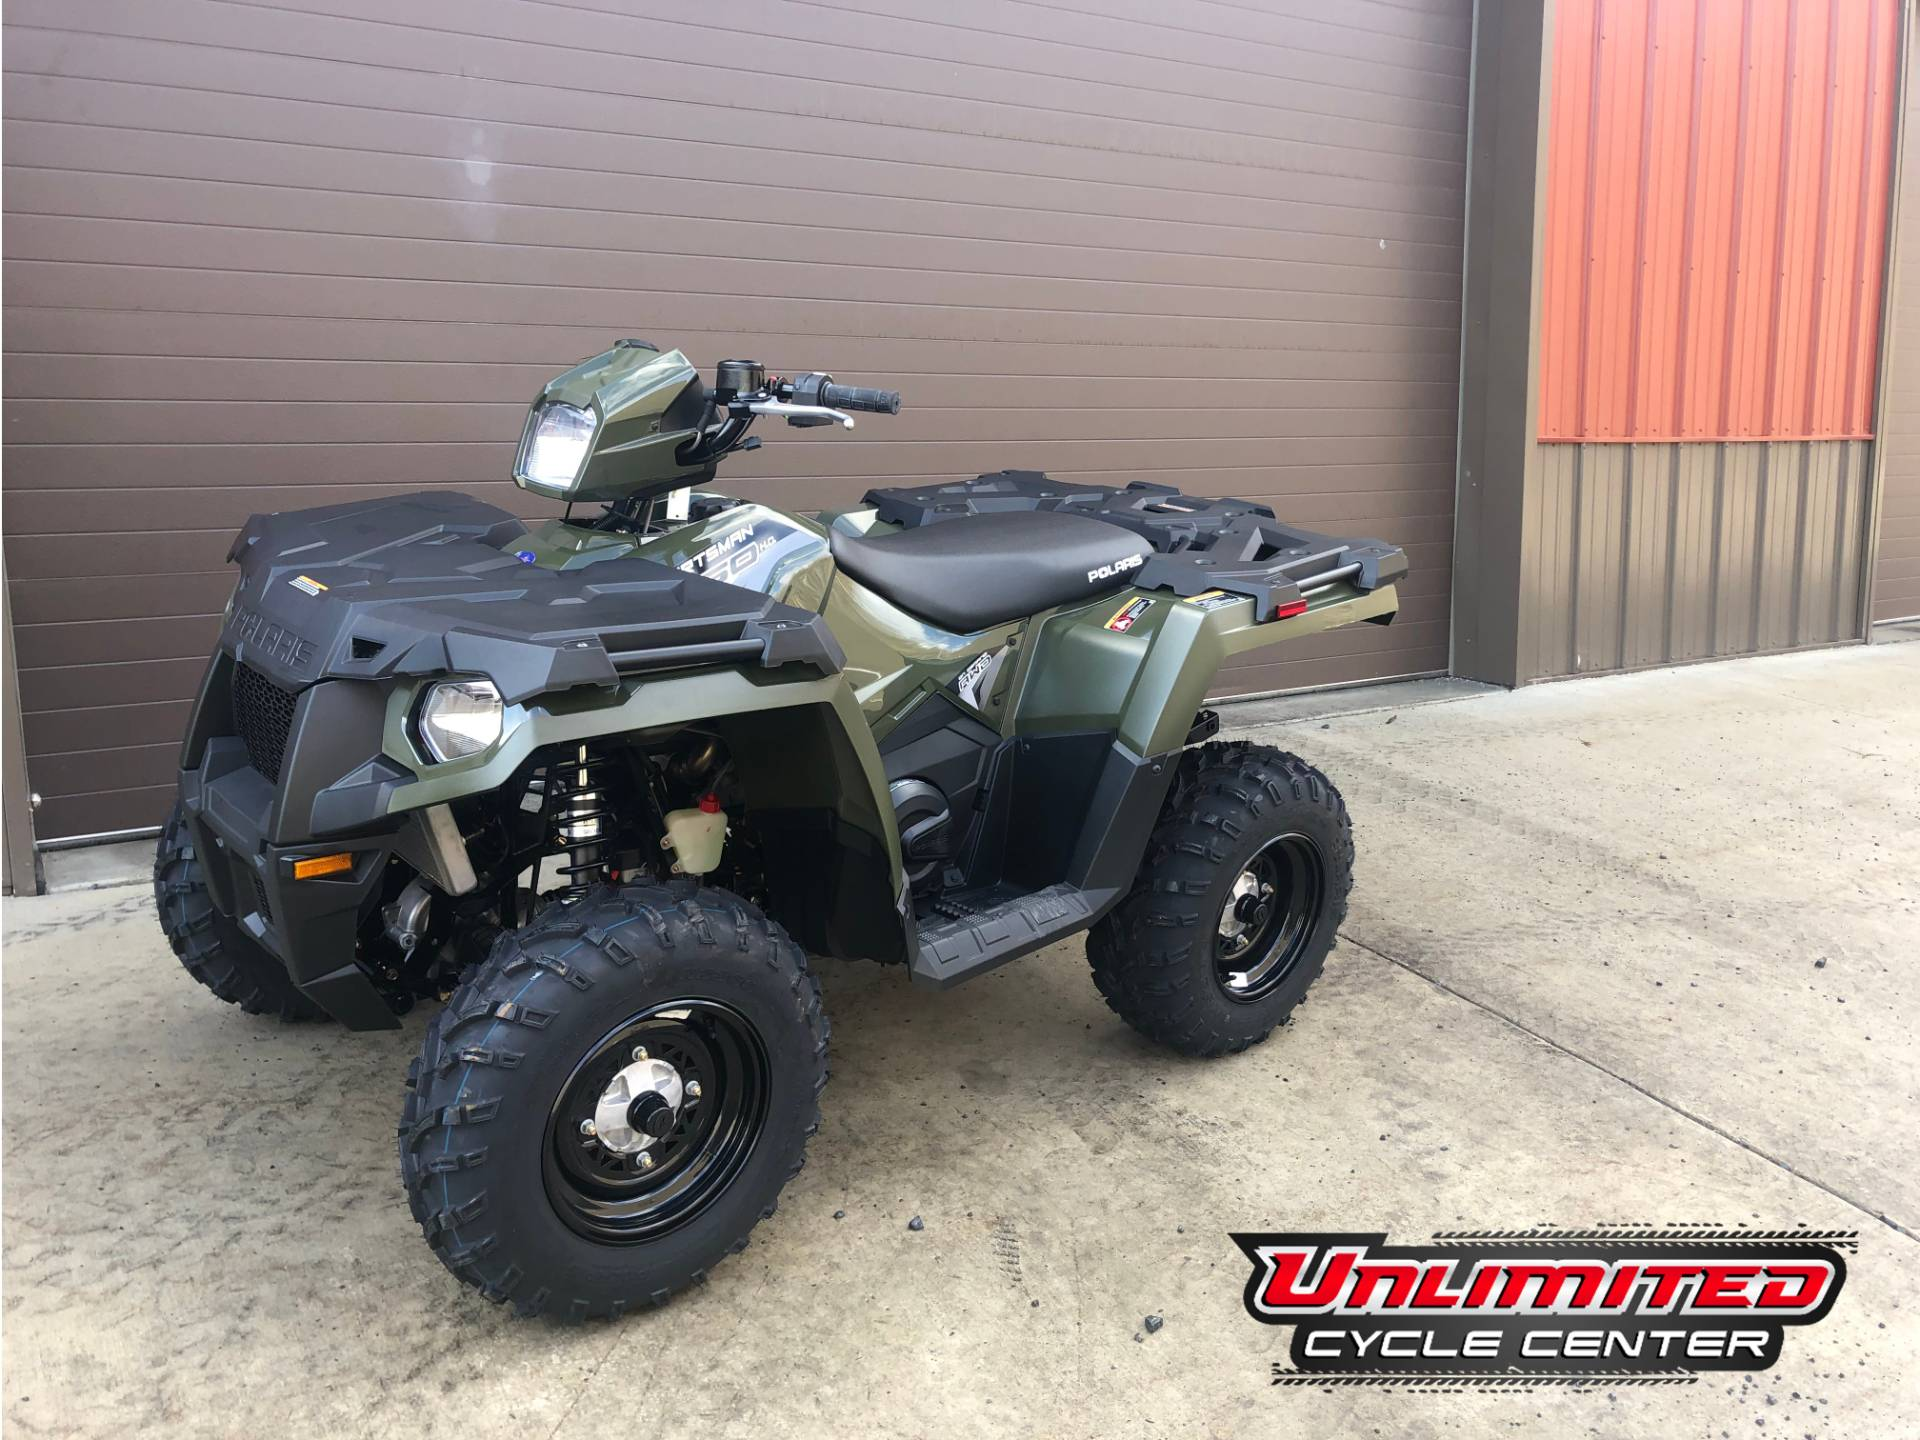 2020 Polaris Sportsman 450 H.O. in Tyrone, Pennsylvania - Photo 1